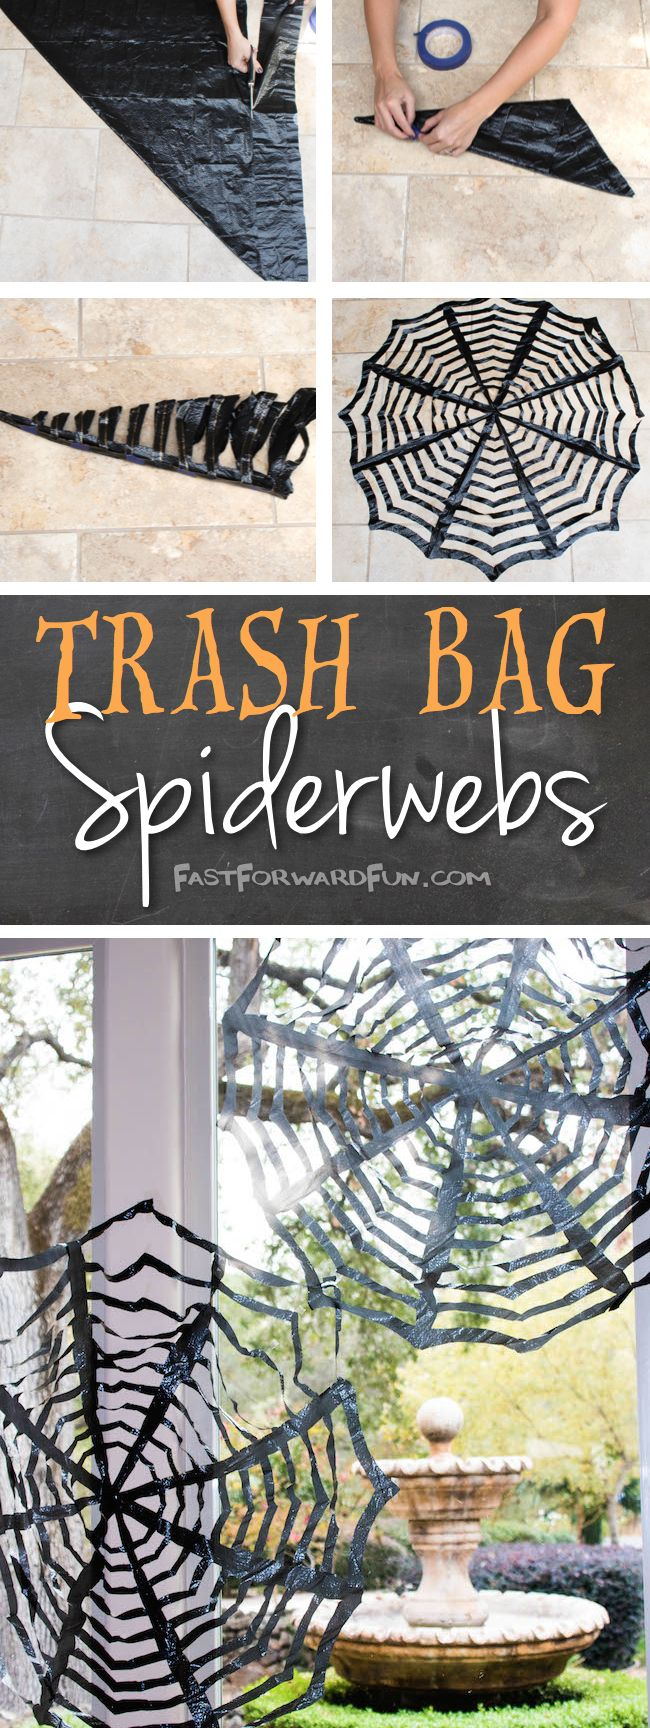 Easy DIY Trash Bag Spiderwebs Halloween Decorations Tutorial | Fast Forward Fun - Spooktacular Halloween DIYs, Crafts and Projects - The BEST Do it Yourself Halloween Decorations